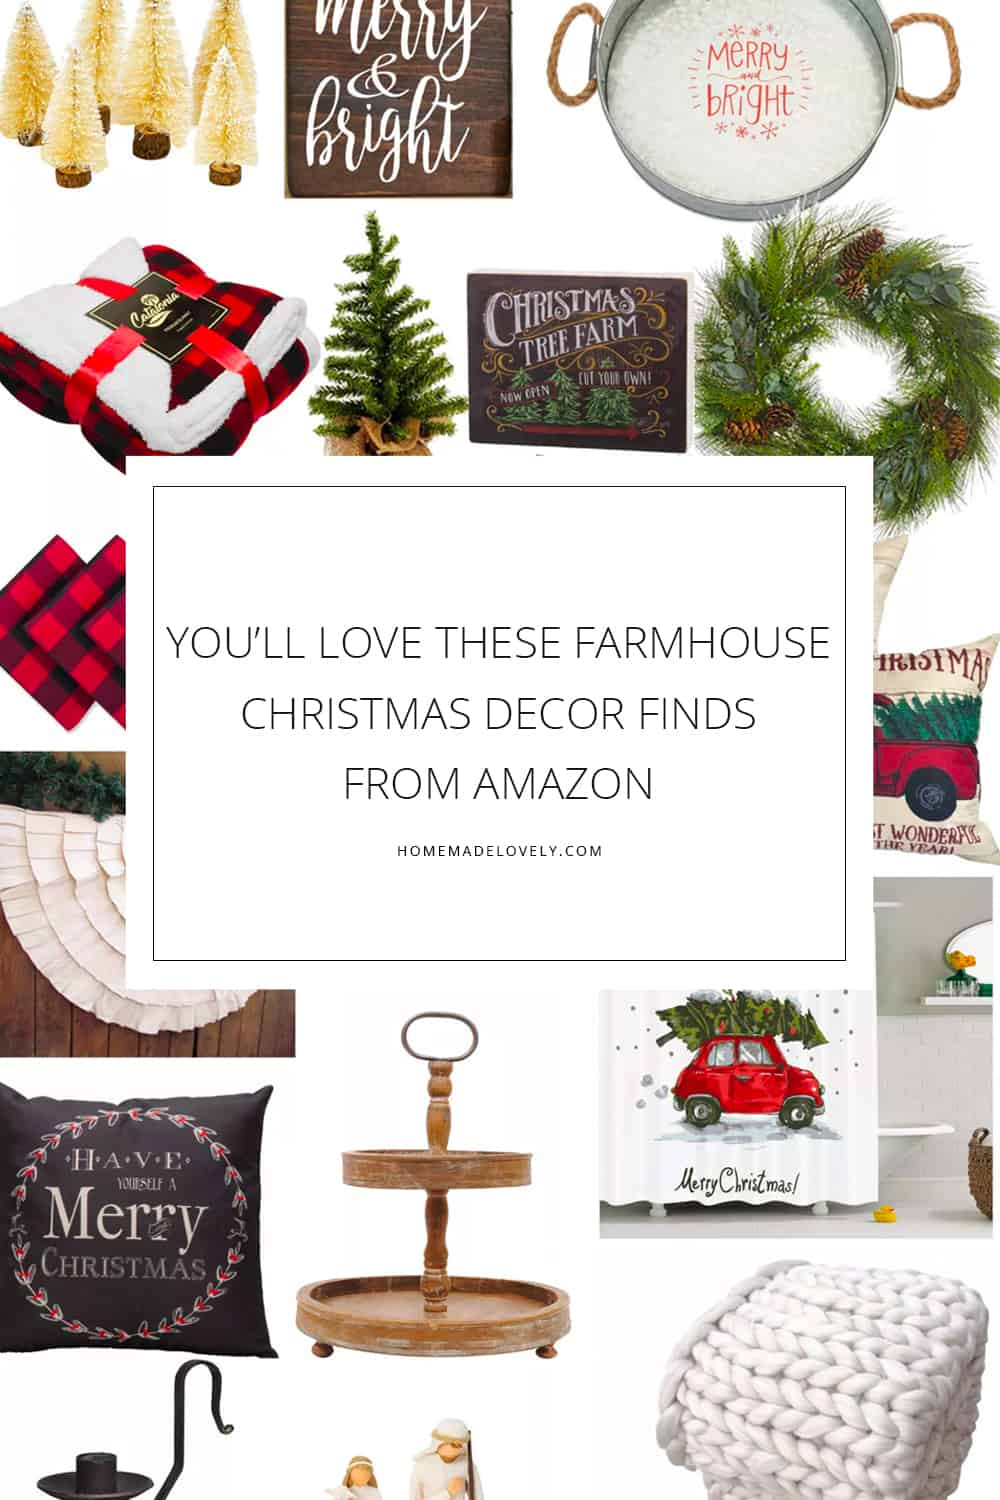 You Ll Love These Farmhouse Christmas Decor Finds From Amazon